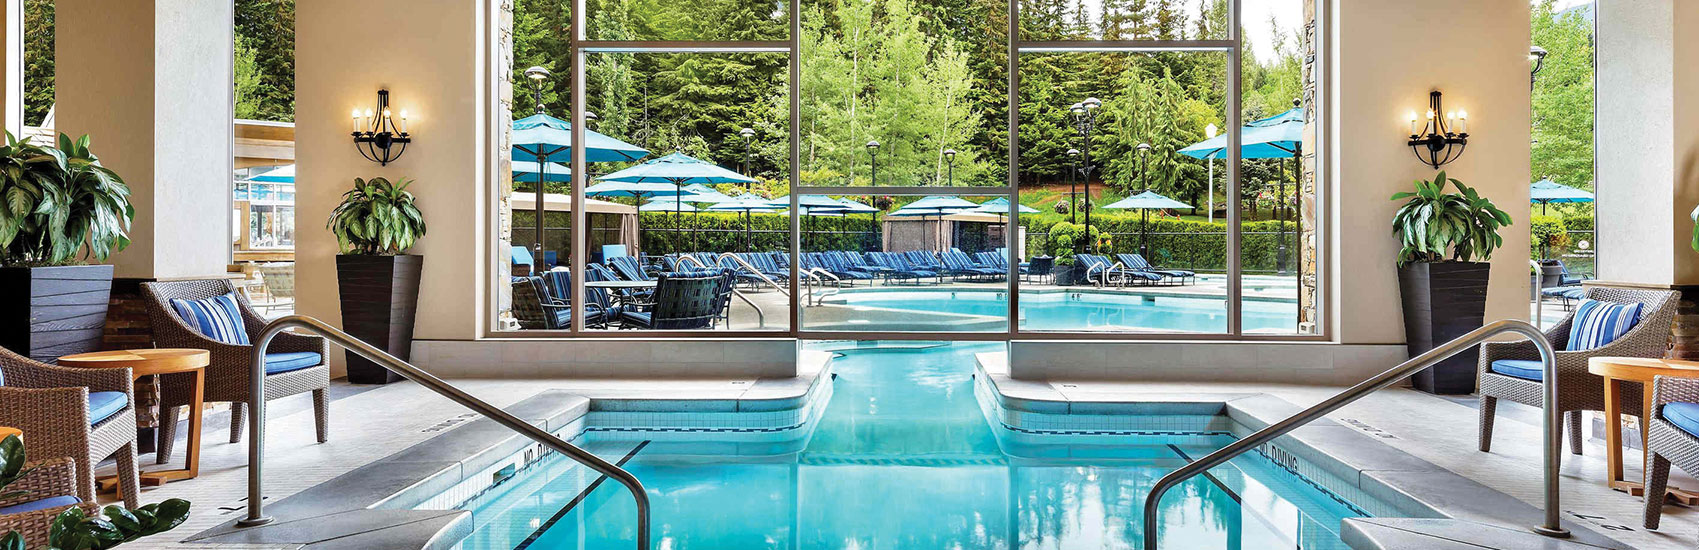 The Fairmont Chateau Whistler 5